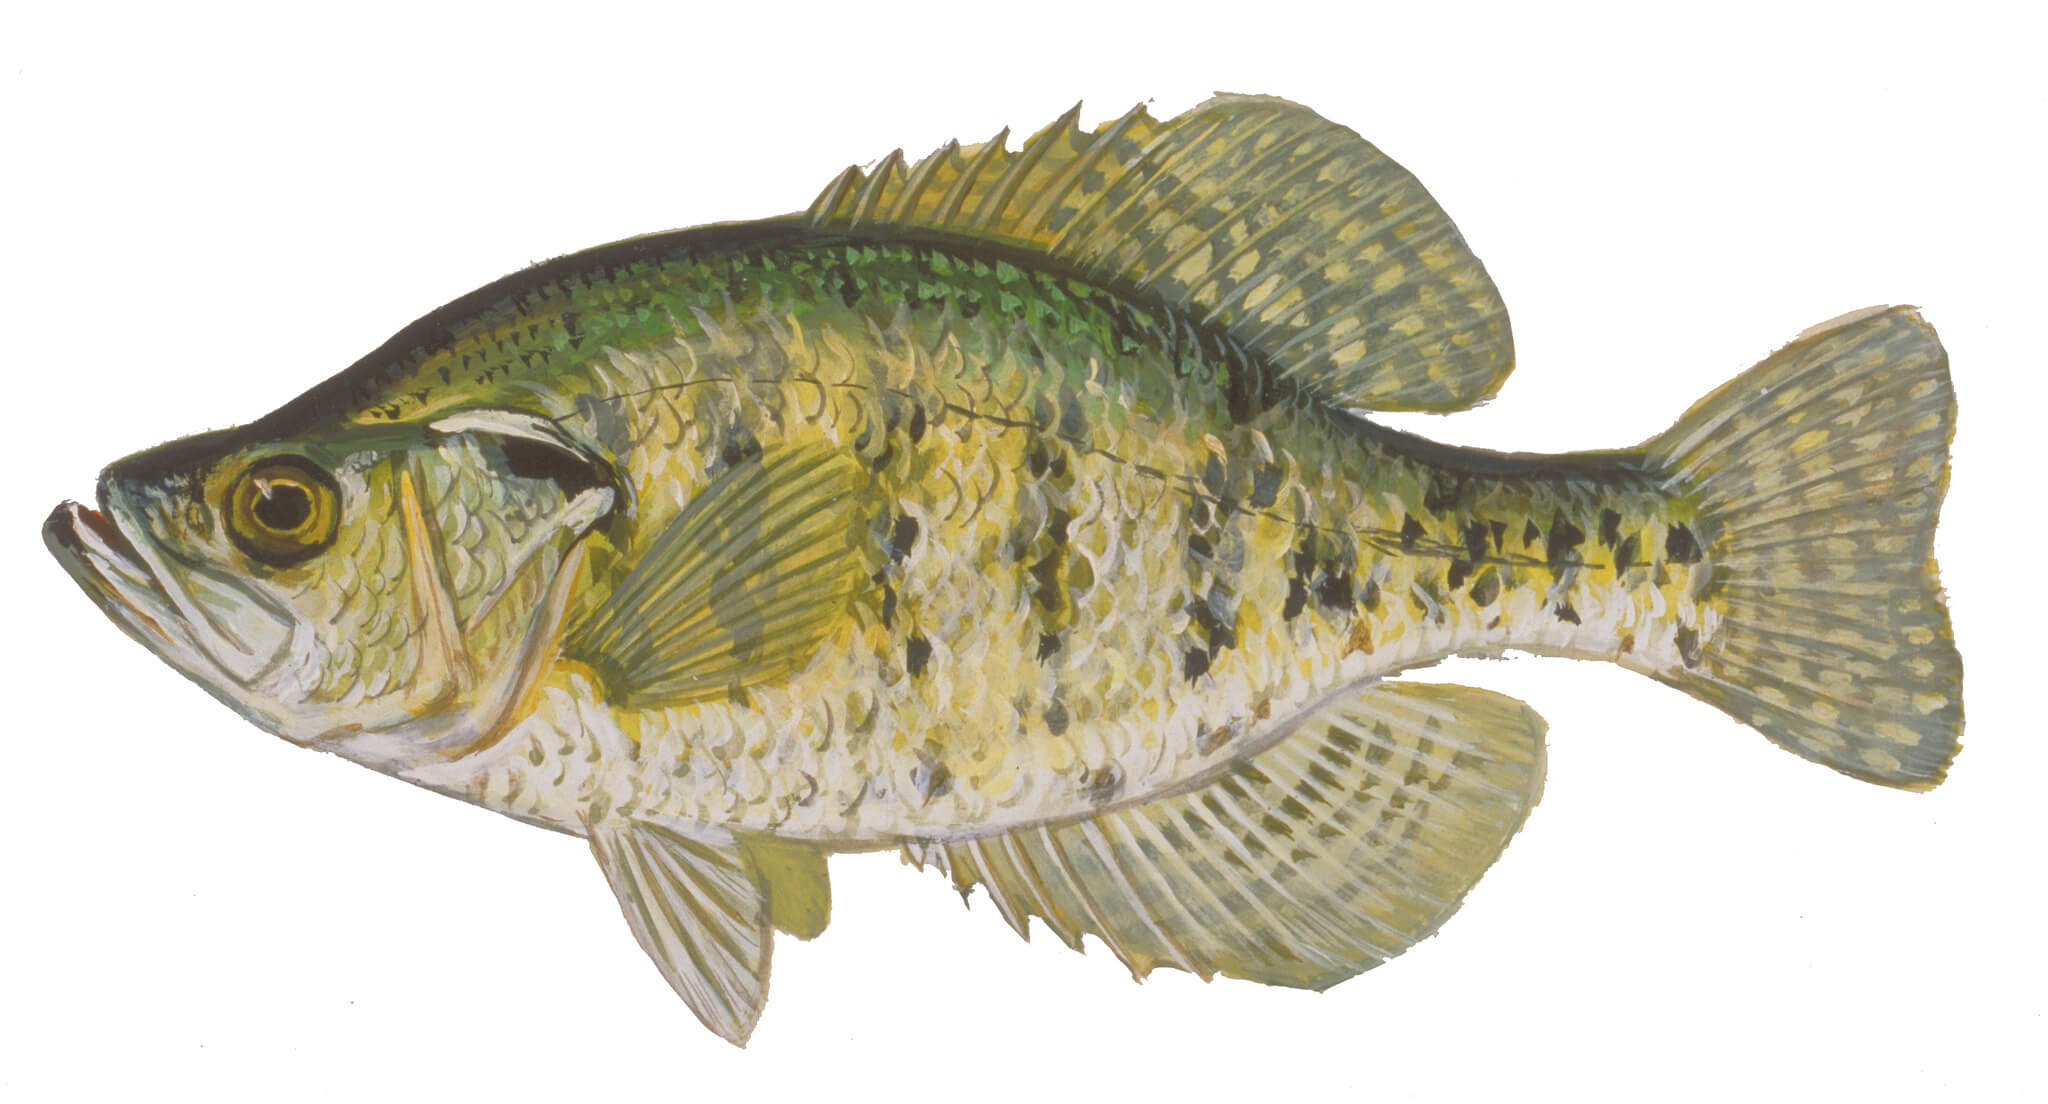 Crappie Fishing Tips - How To Catch Crappie Guide: Where